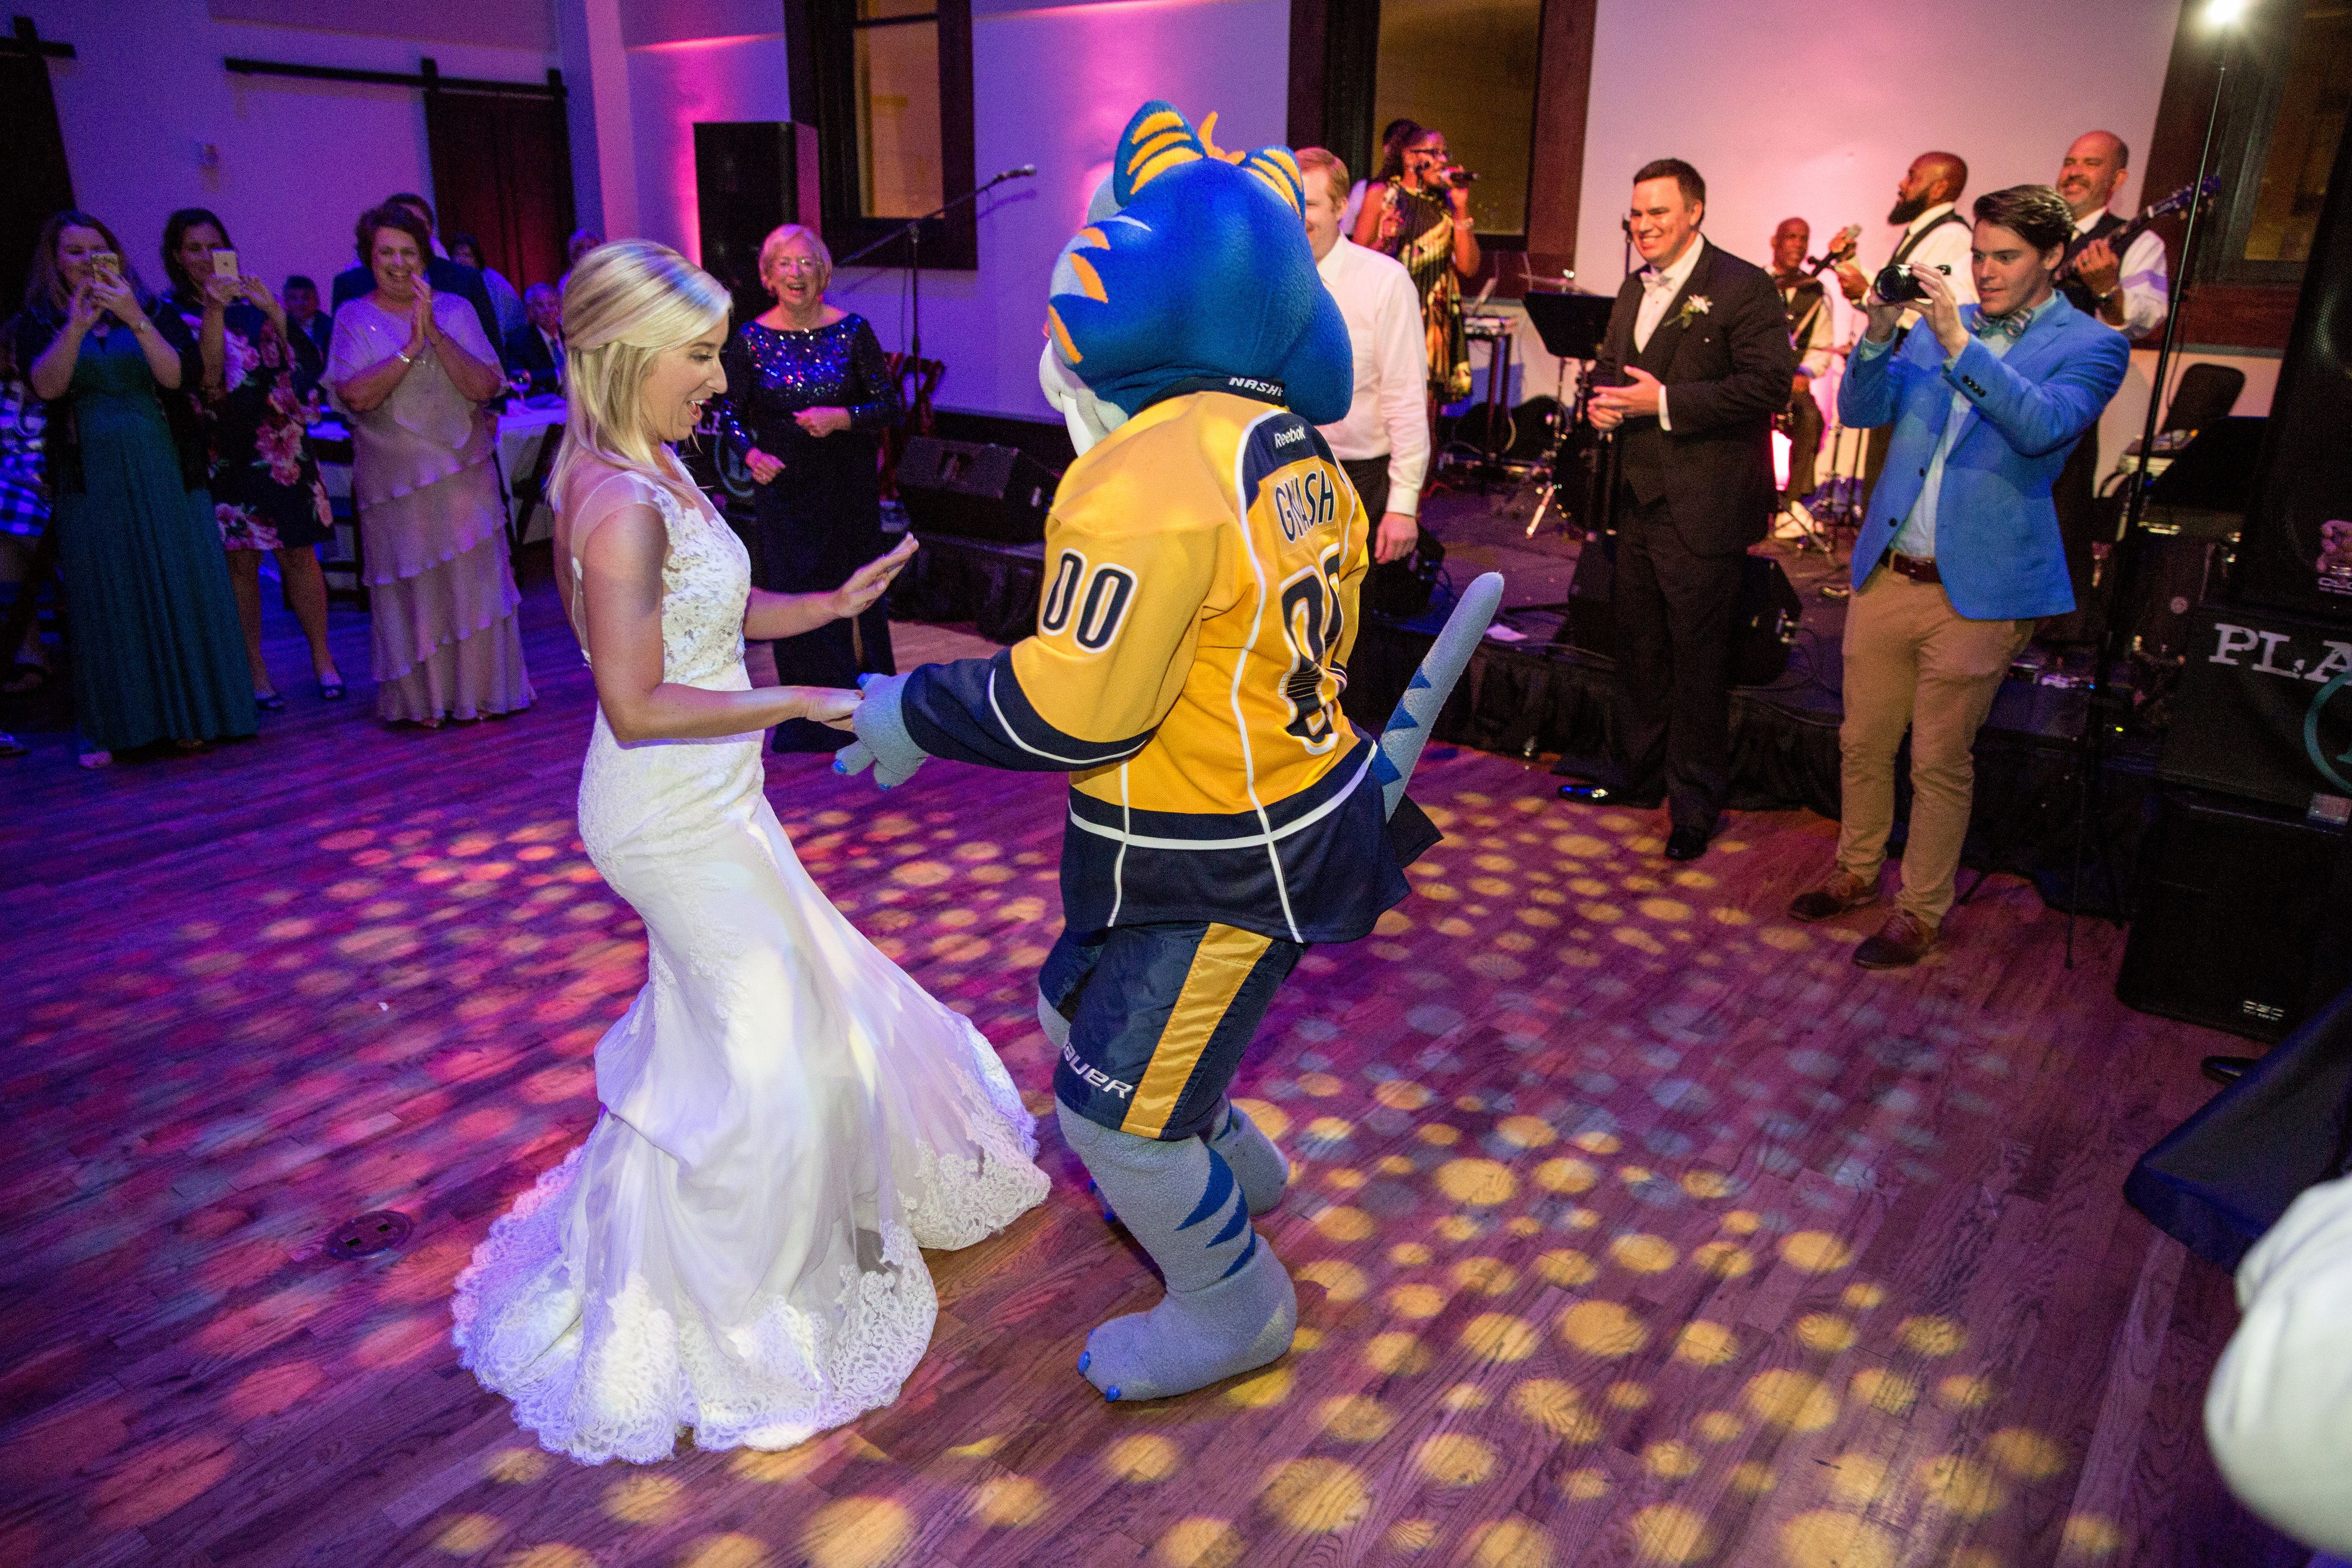 Kelly dancing with Gnash